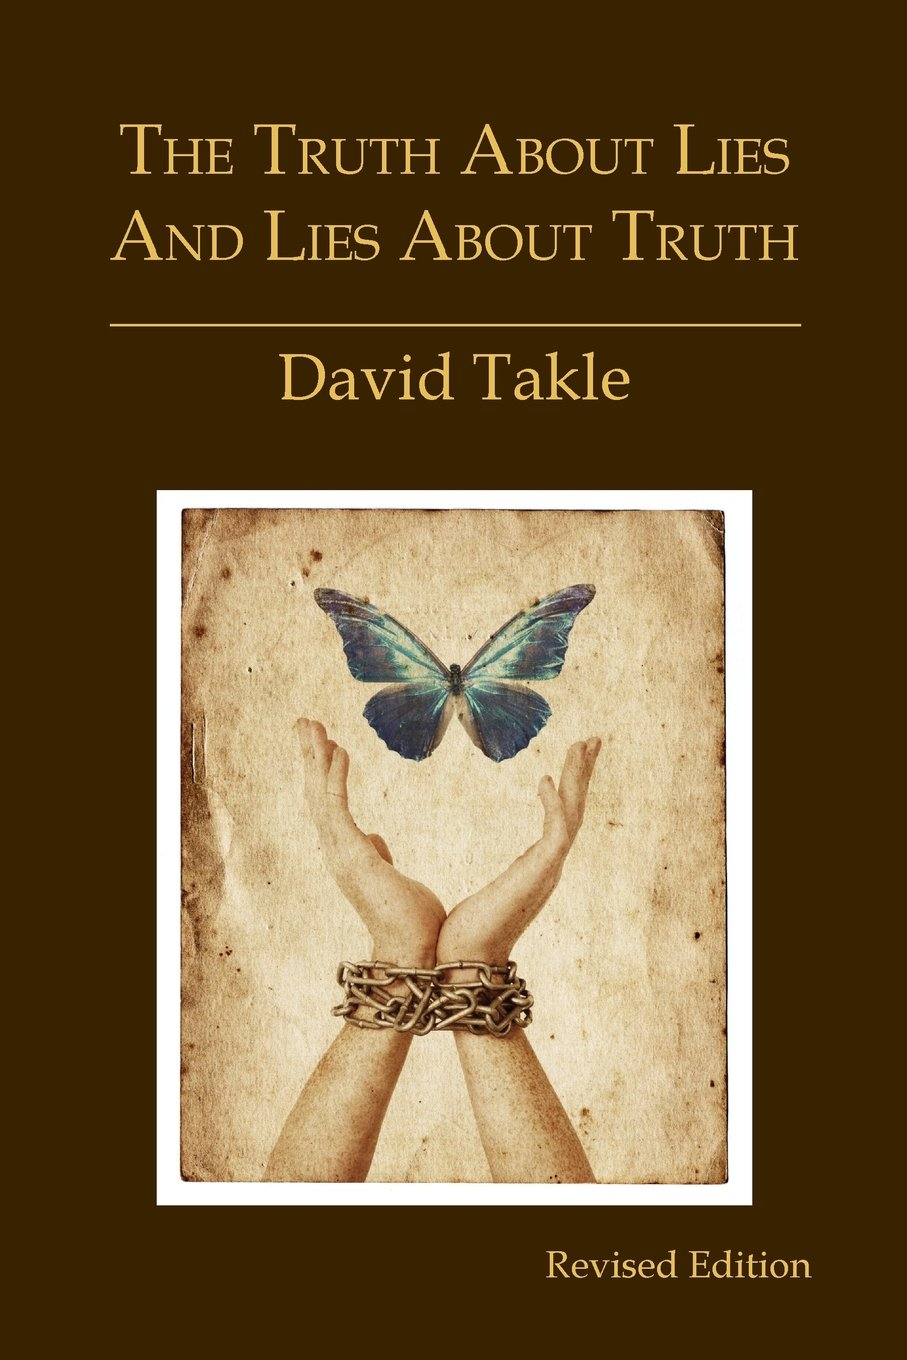 Download The Truth About Lies and Lies About Truth: A Fresh New Look at the Cunning of Evil and the Means for Our Transformation pdf